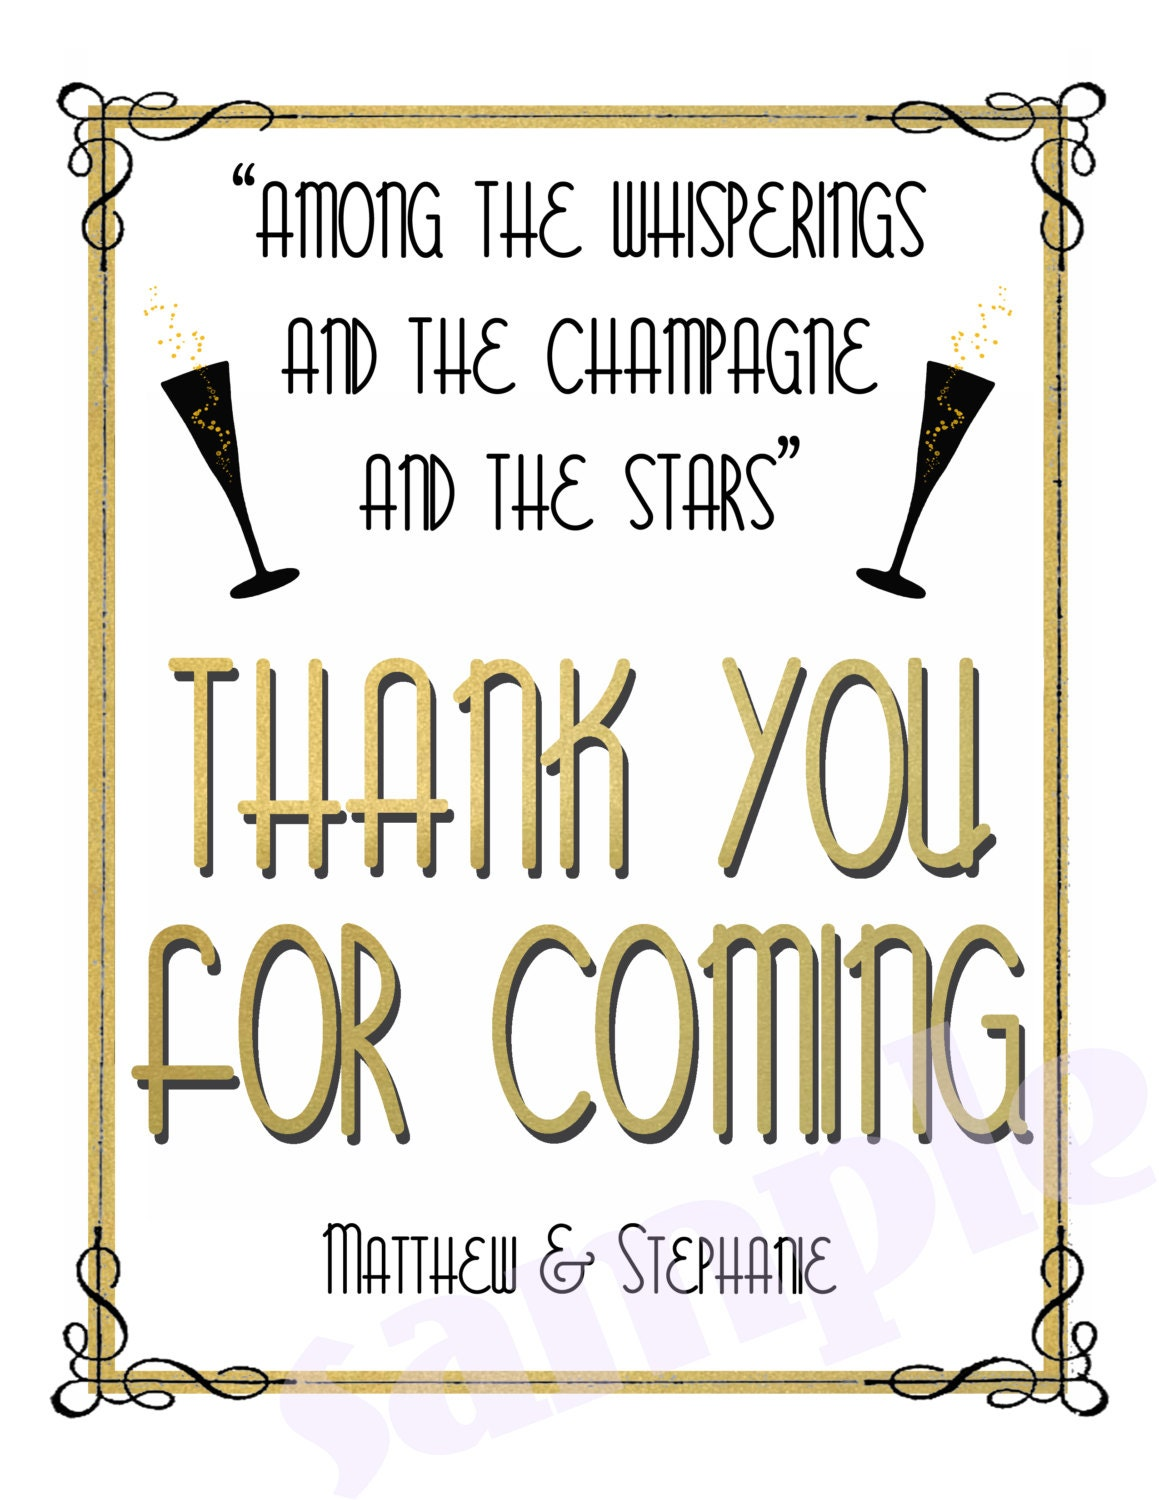 Party Quotes From The Great Gatsby Gatsby Quote Wedding/party